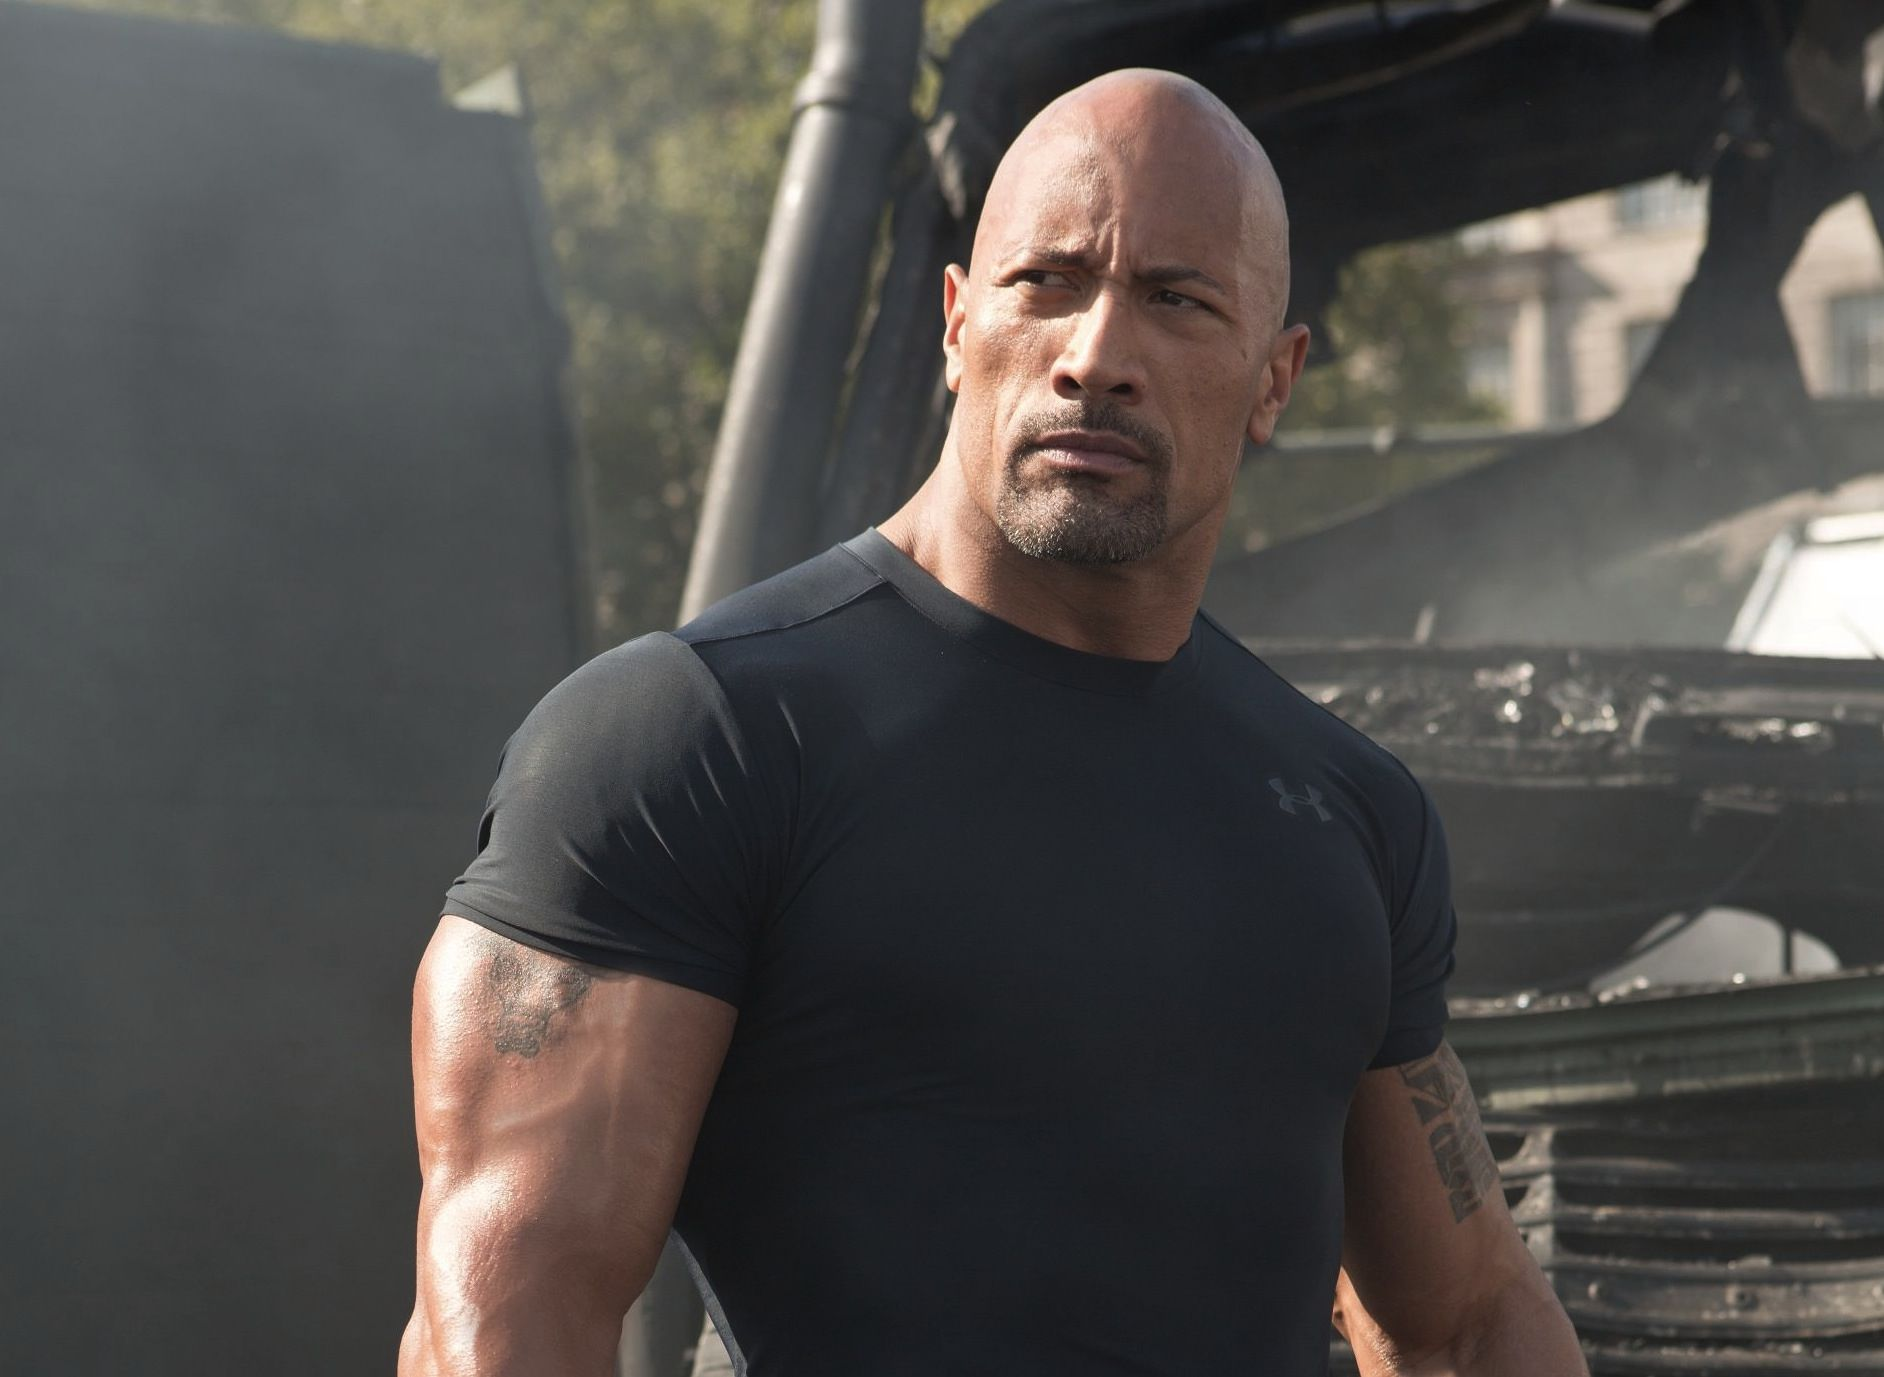 dwayne-johnson-fast-and-furious1-dwayne-the-rock-johnson-releases-exclusive-san-andreas-teaser-on-instagram-just-in-time-for-the-oscars-jpeg-274602